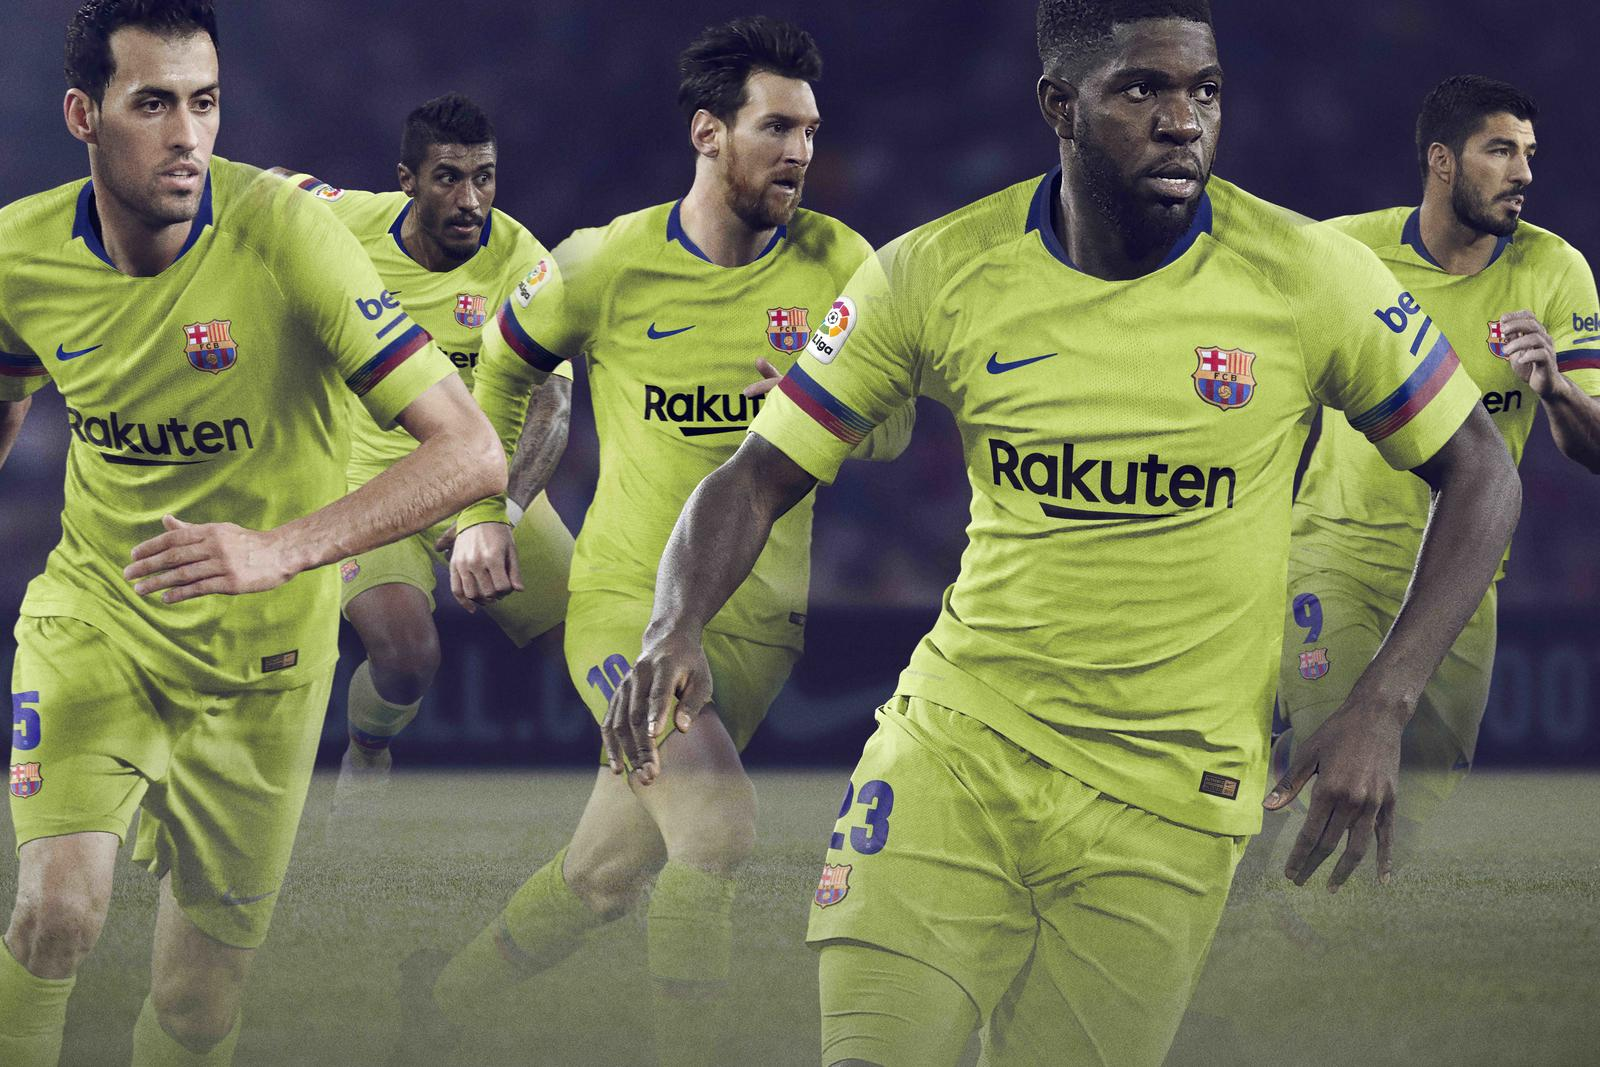 FC Barcelona's Latest Away Kit Revels in a Daring History 2